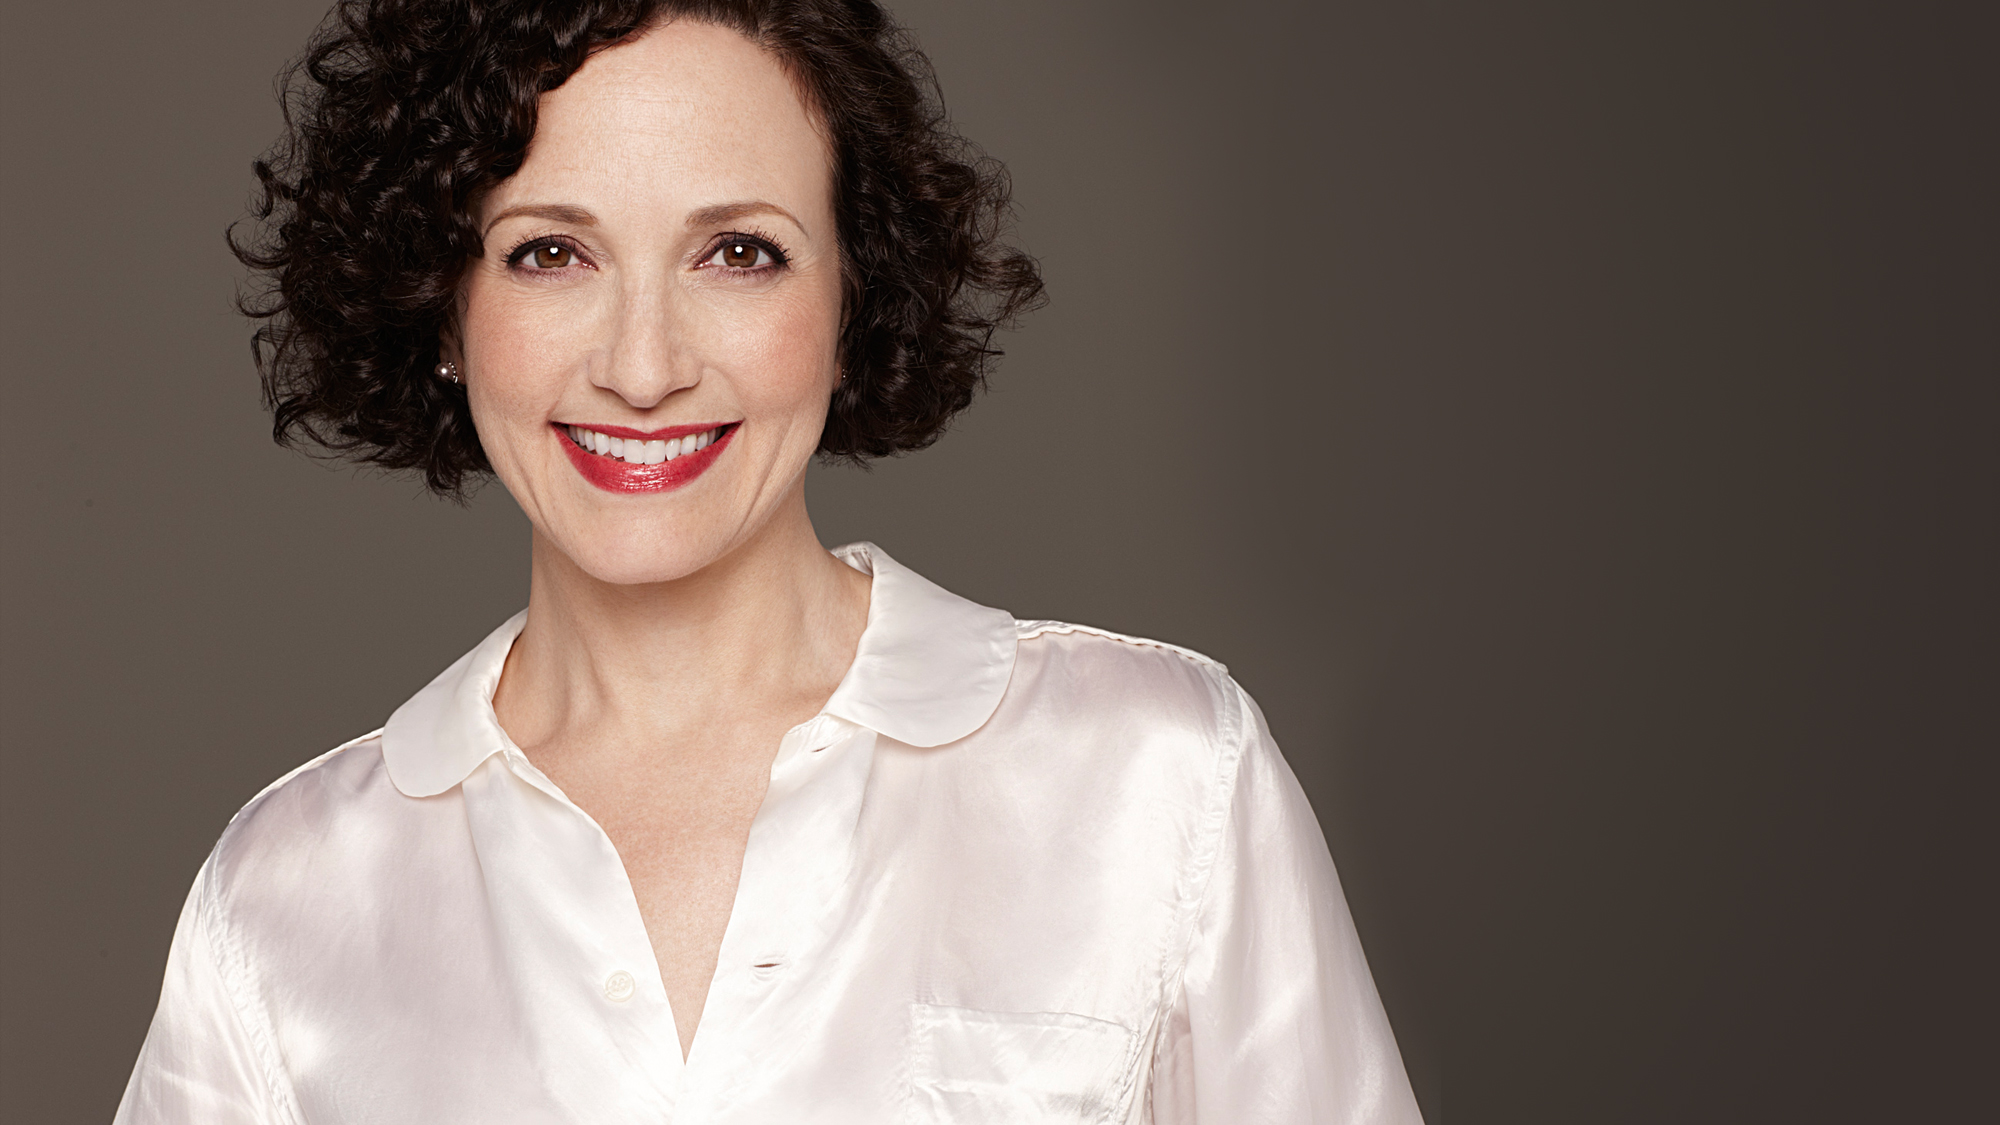 Bebe Neuwirth Bebe Neuwirth new pictures